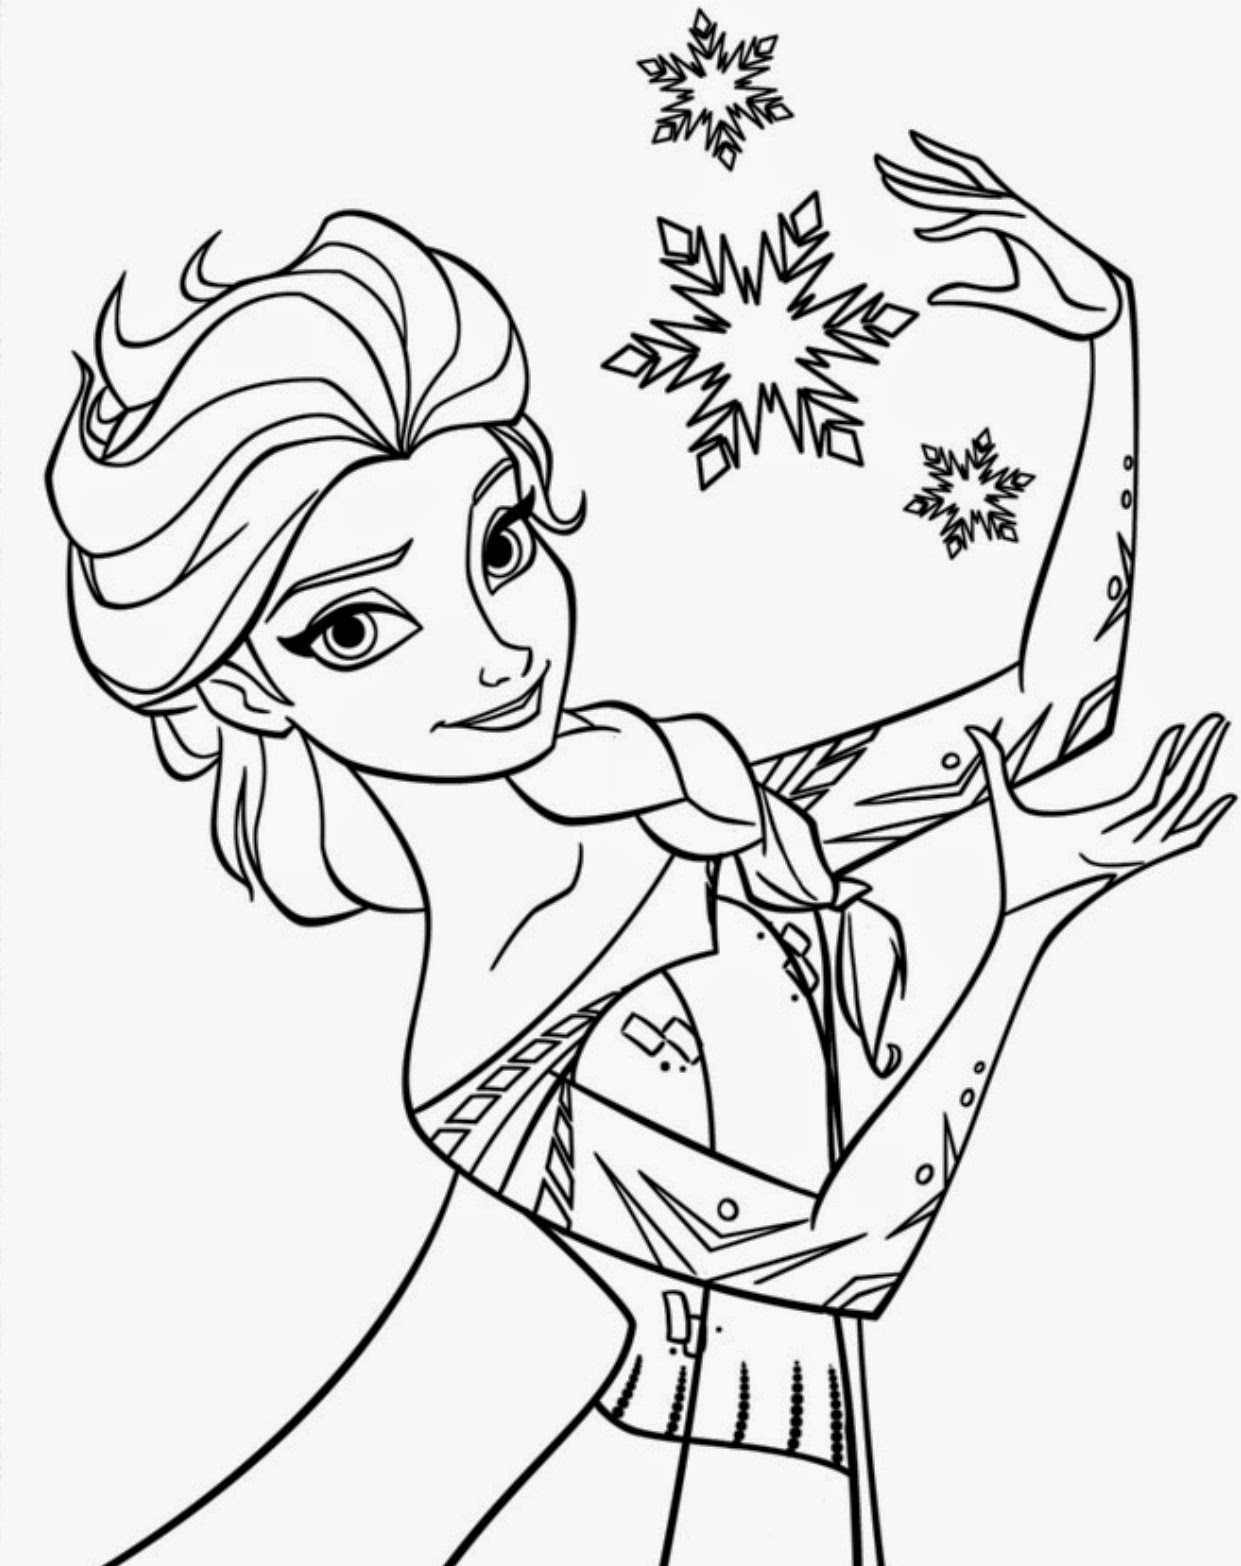 colouring pages to print free 15 beautiful disney frozen coloring pages free instant to free print pages colouring